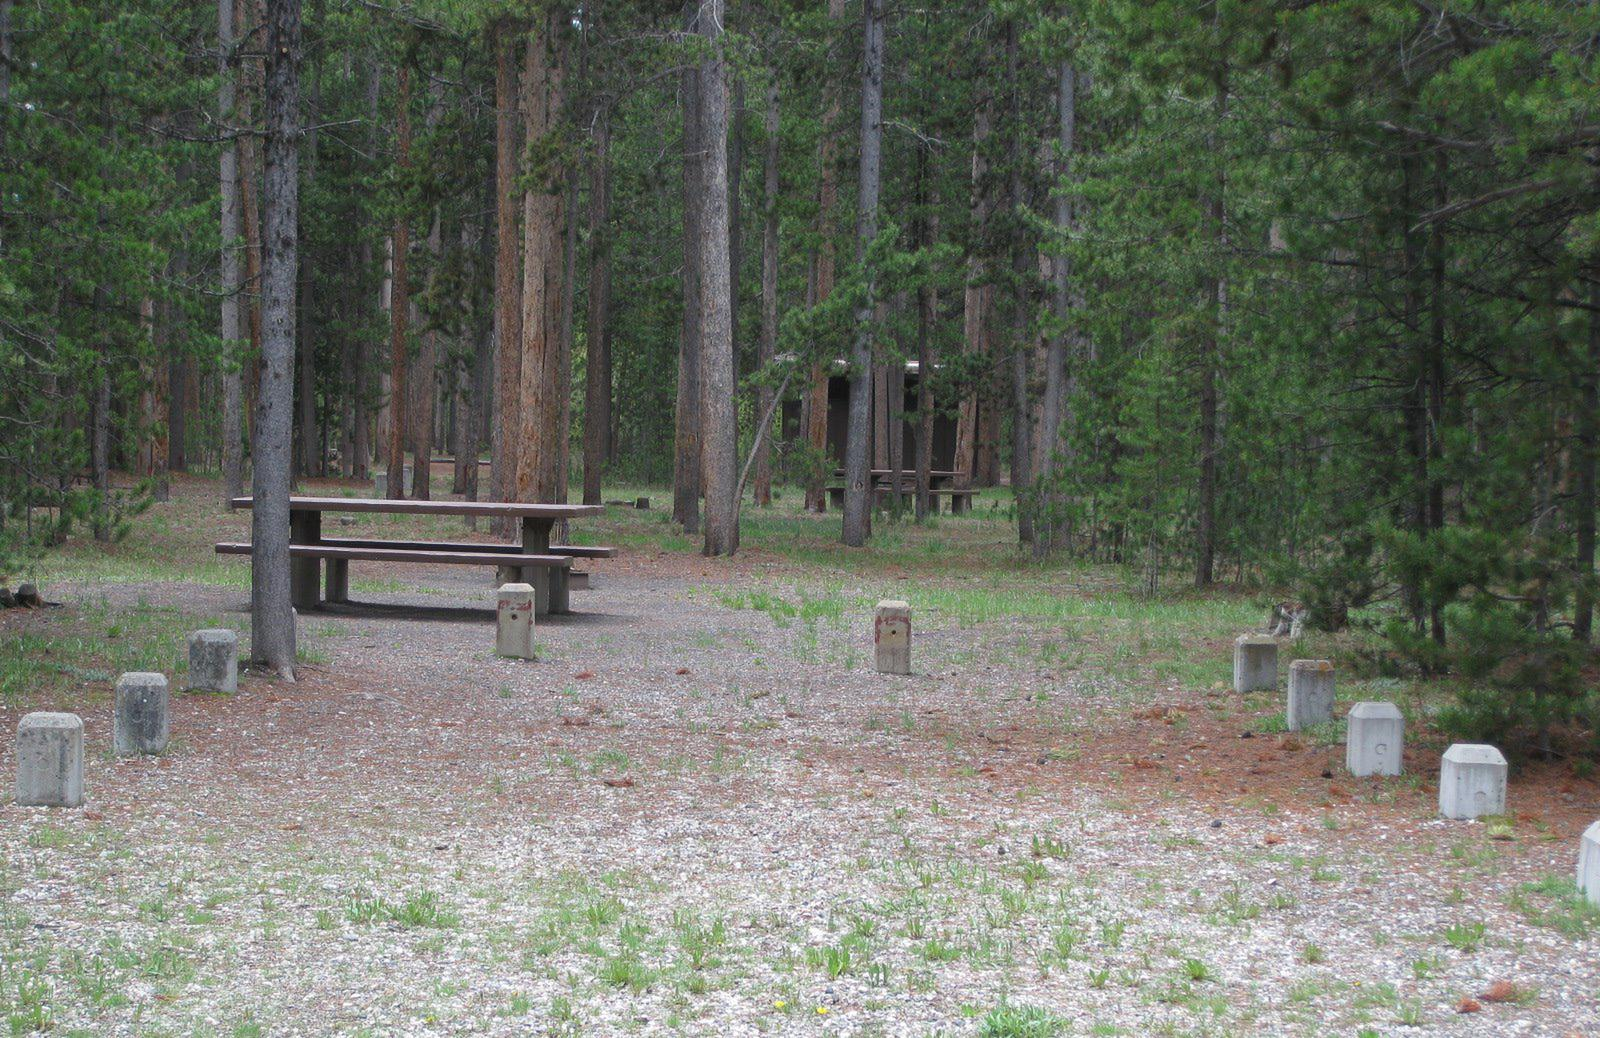 Site A14, surrounded by pine trees, picnic table & fire ringSite A14